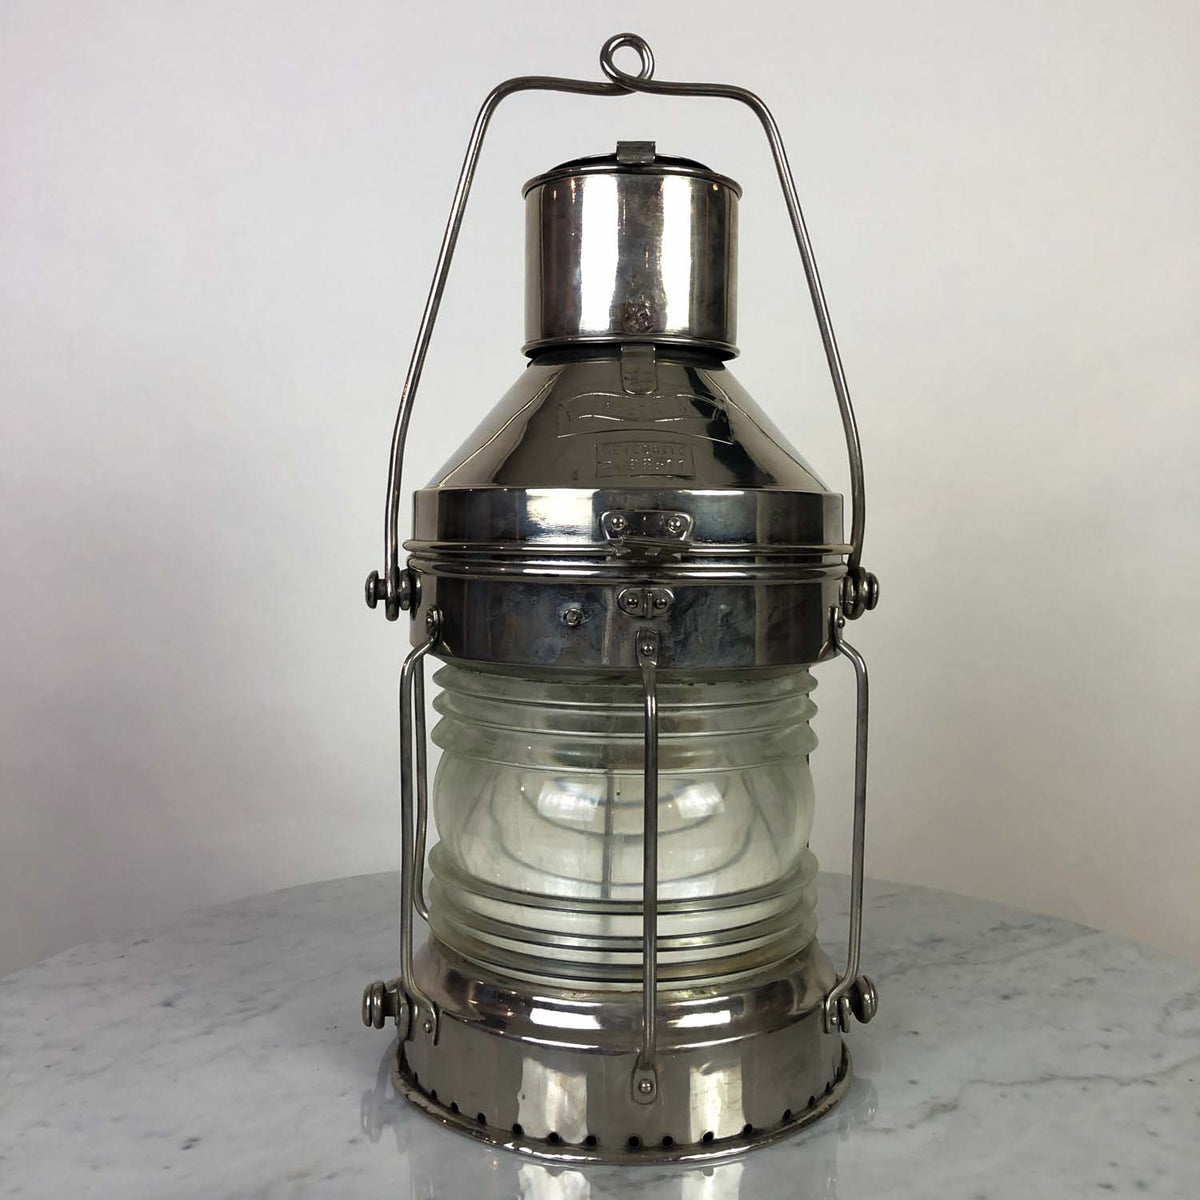 Ships Anchor Lantern by Meteorite